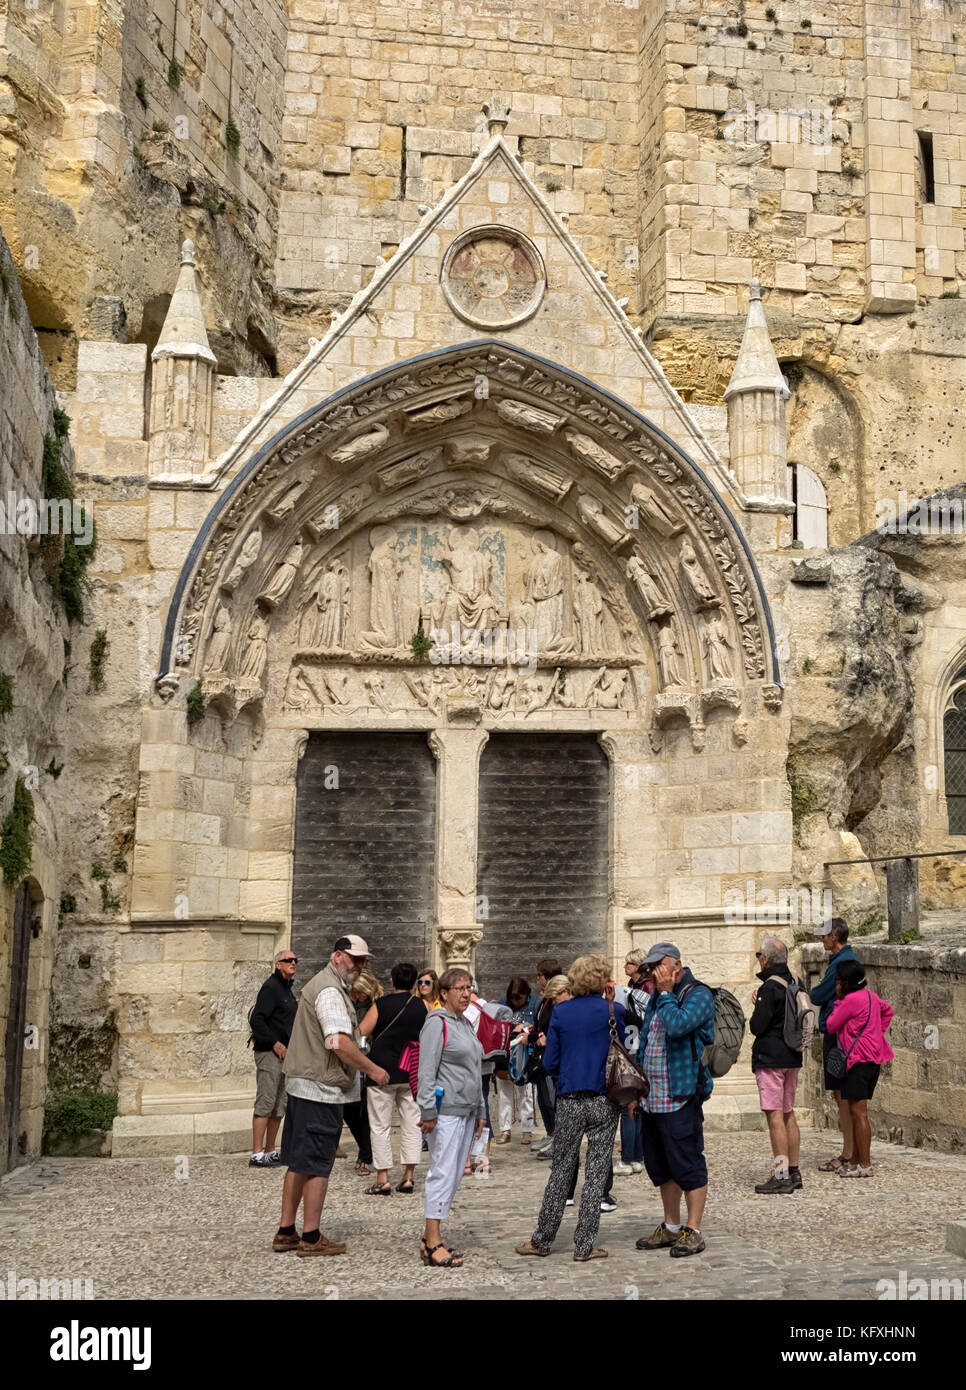 SAINT-ÉMILION, FRANCE:A group of sightseers outside the the Monolithic Church - Stock Image